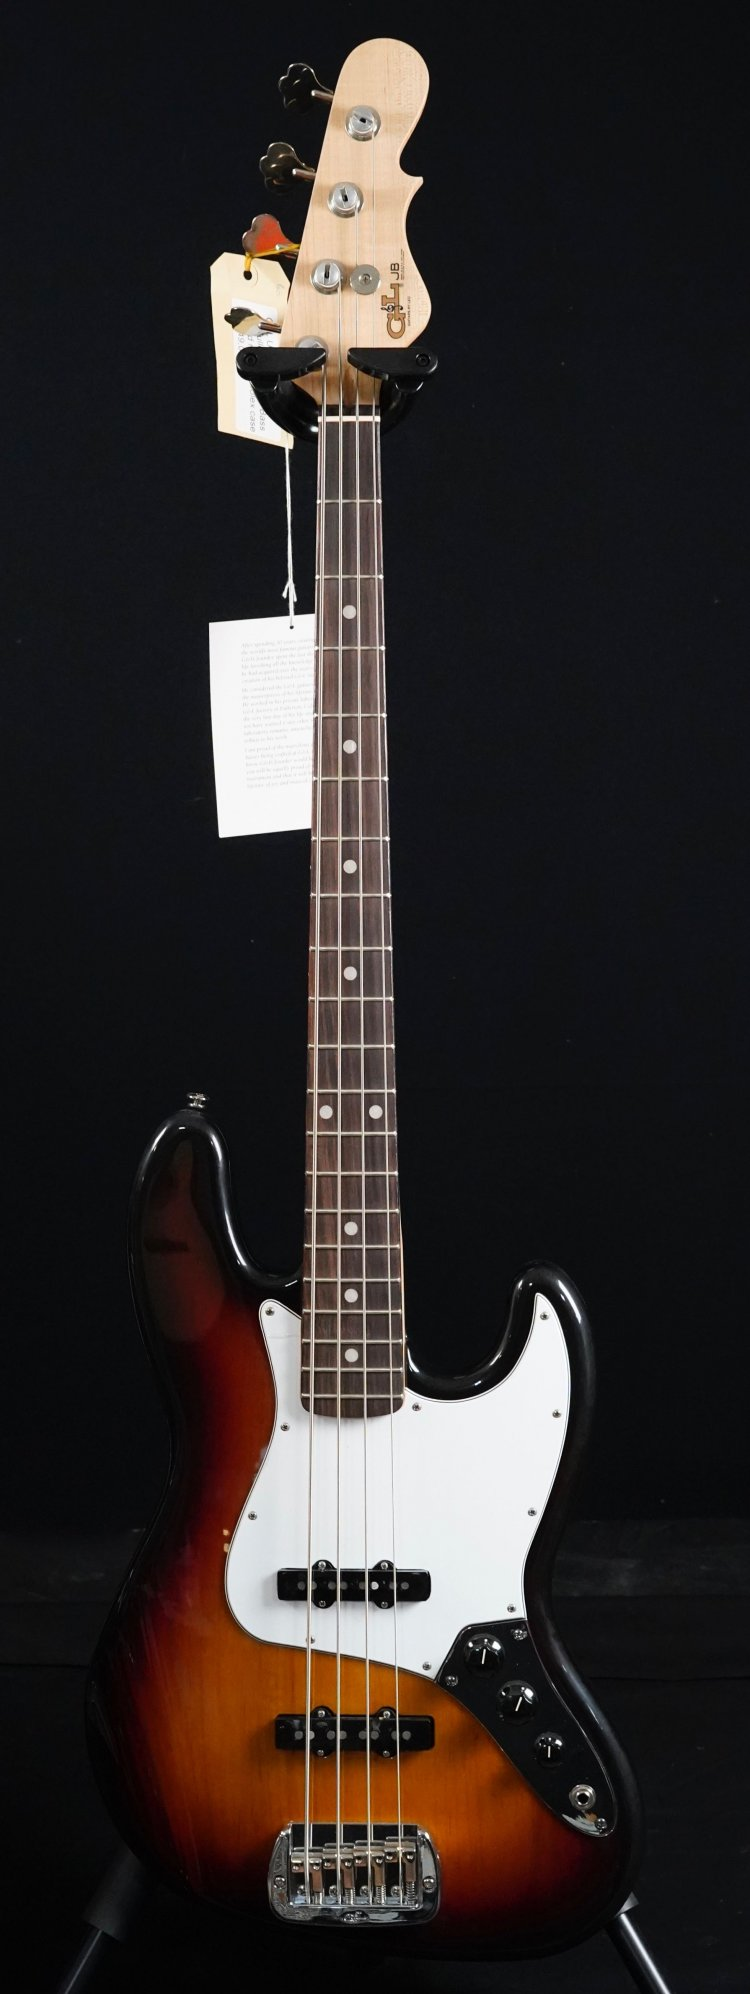 G&L USA JB Fullerton DeLuxe Bass limited